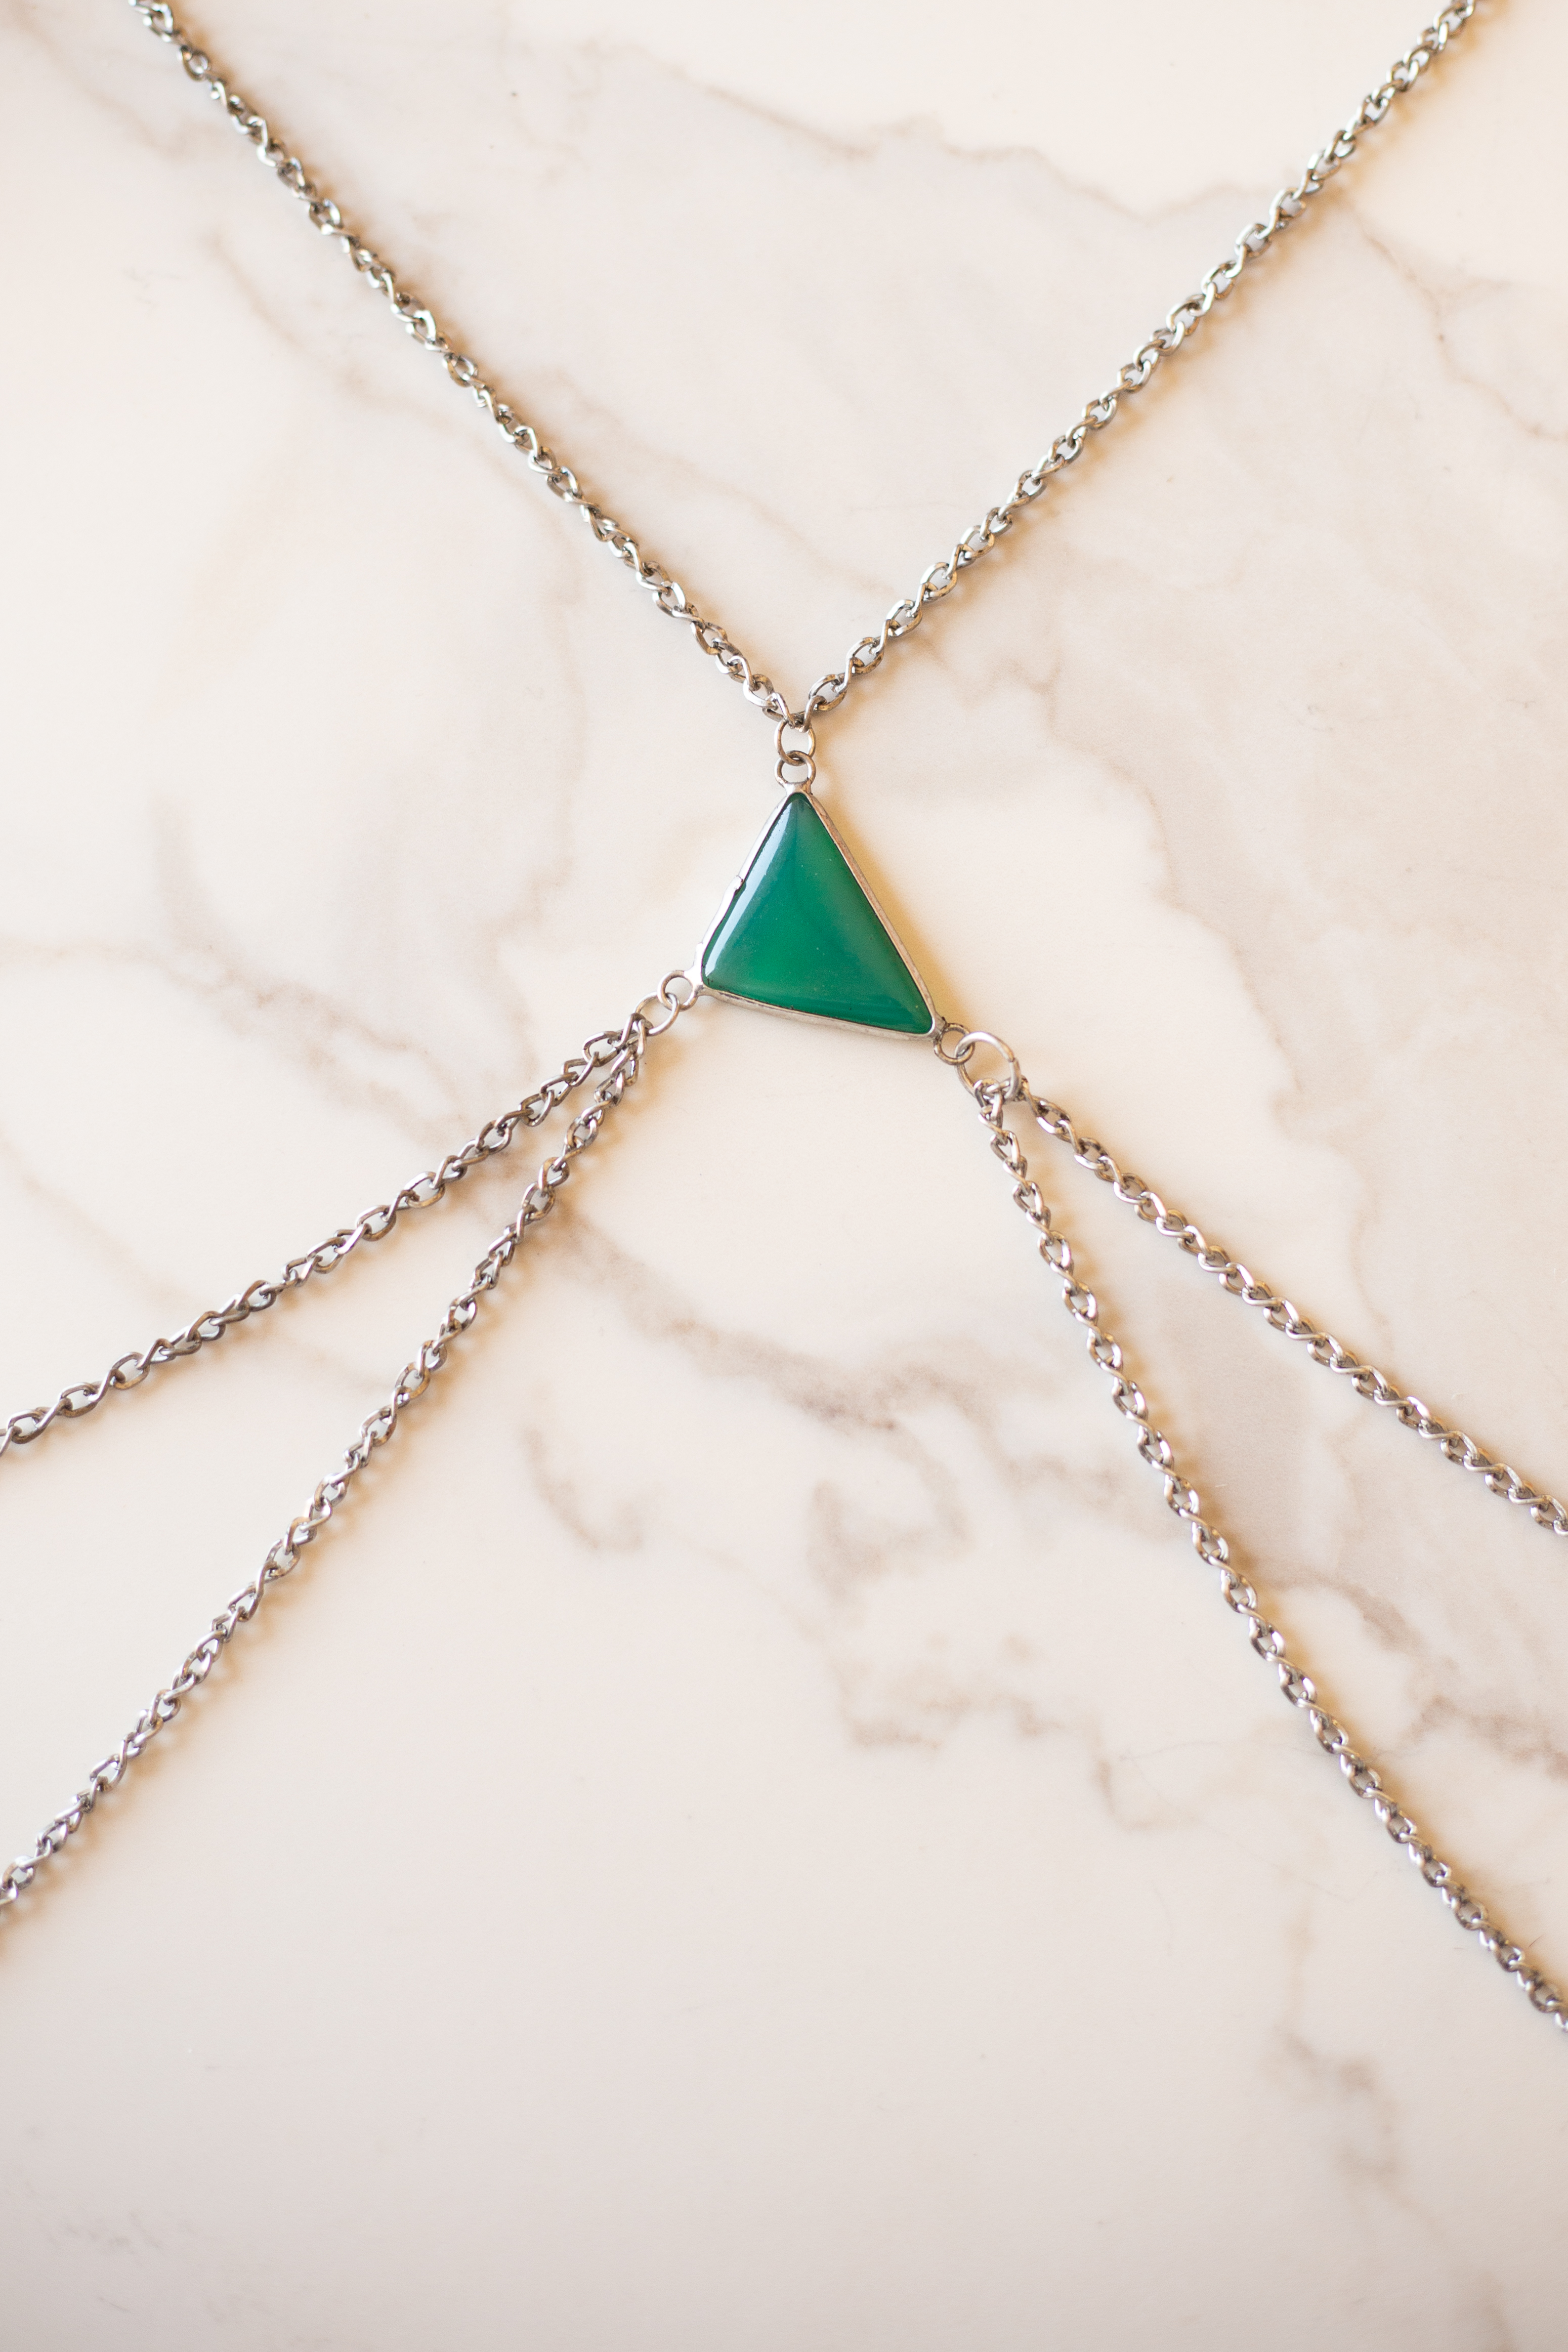 Antique Silver Body Chain with Triangle Moss Green Pendant